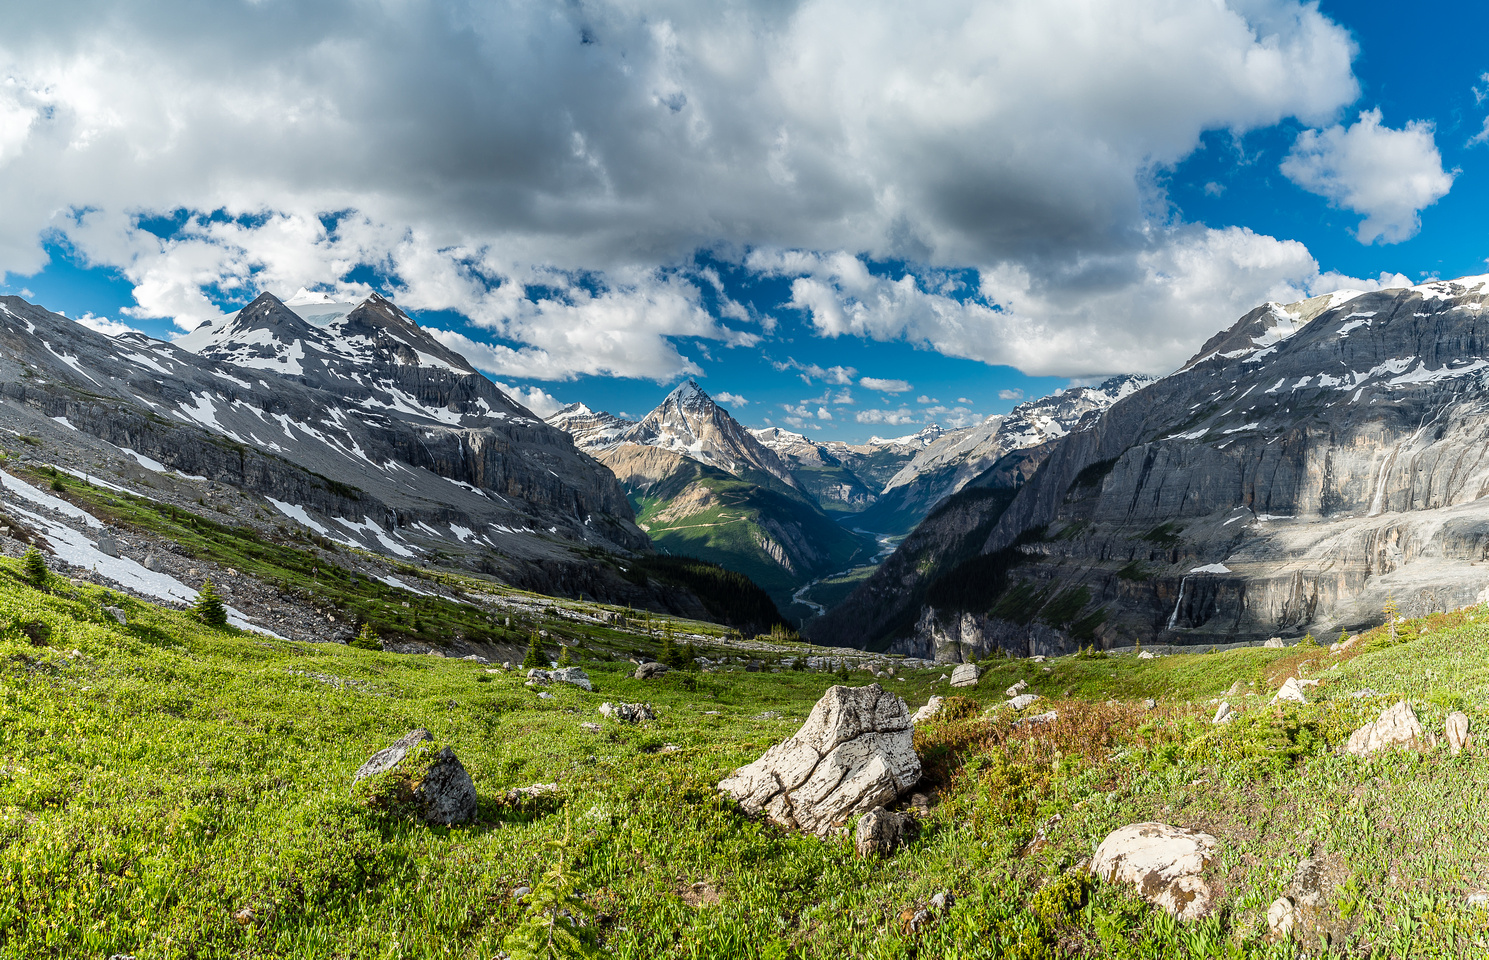 Gorgeous 'little' corner of the Canadian Rockies that sees very few human feet each year.